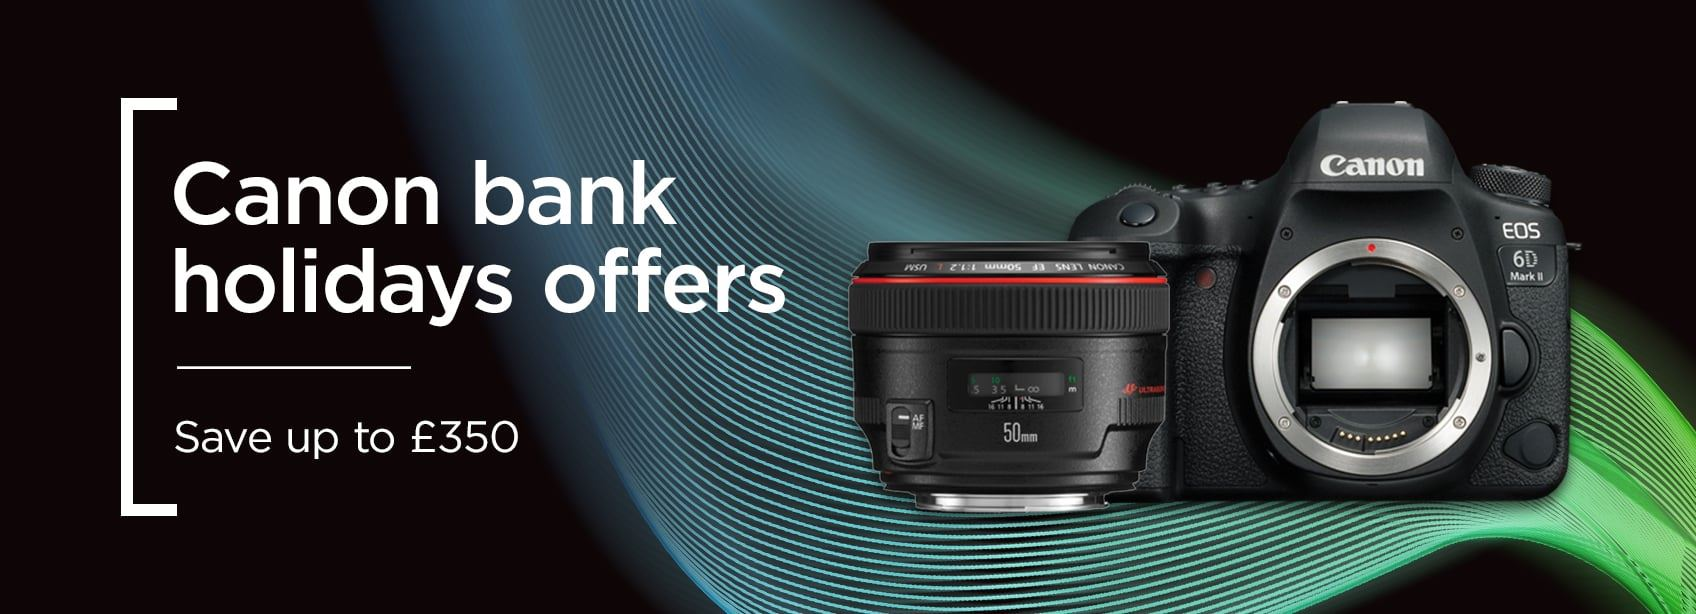 wex-photo-video-Canon-bank-holidays-offers-Header-24.05.19.jpg